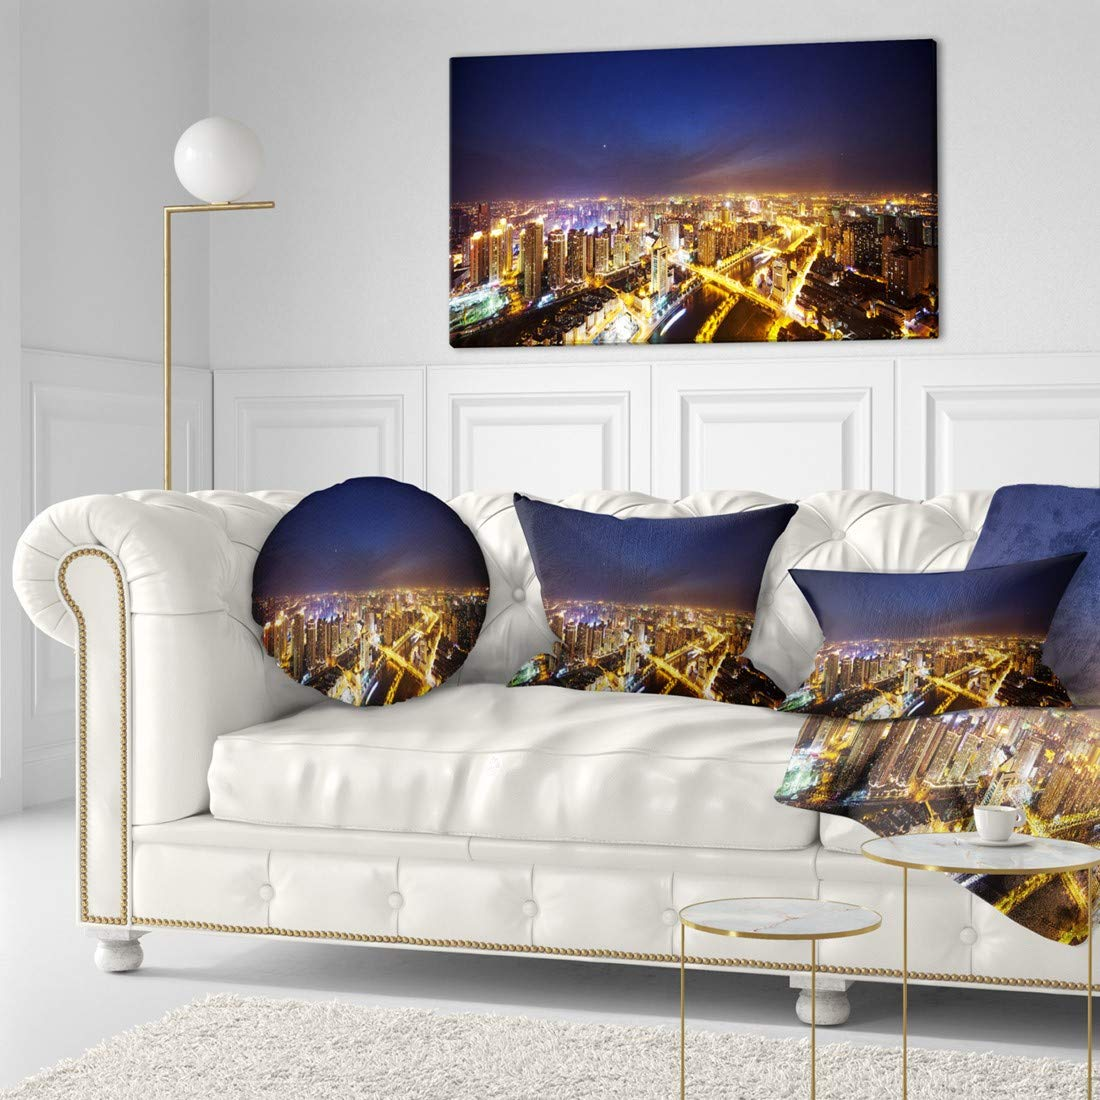 Design Art Pt10997 40 20 Downtown Nighttime Panorama Cityscape Artwork Canvas 40x20 40x20 Amazon In Home Kitchen